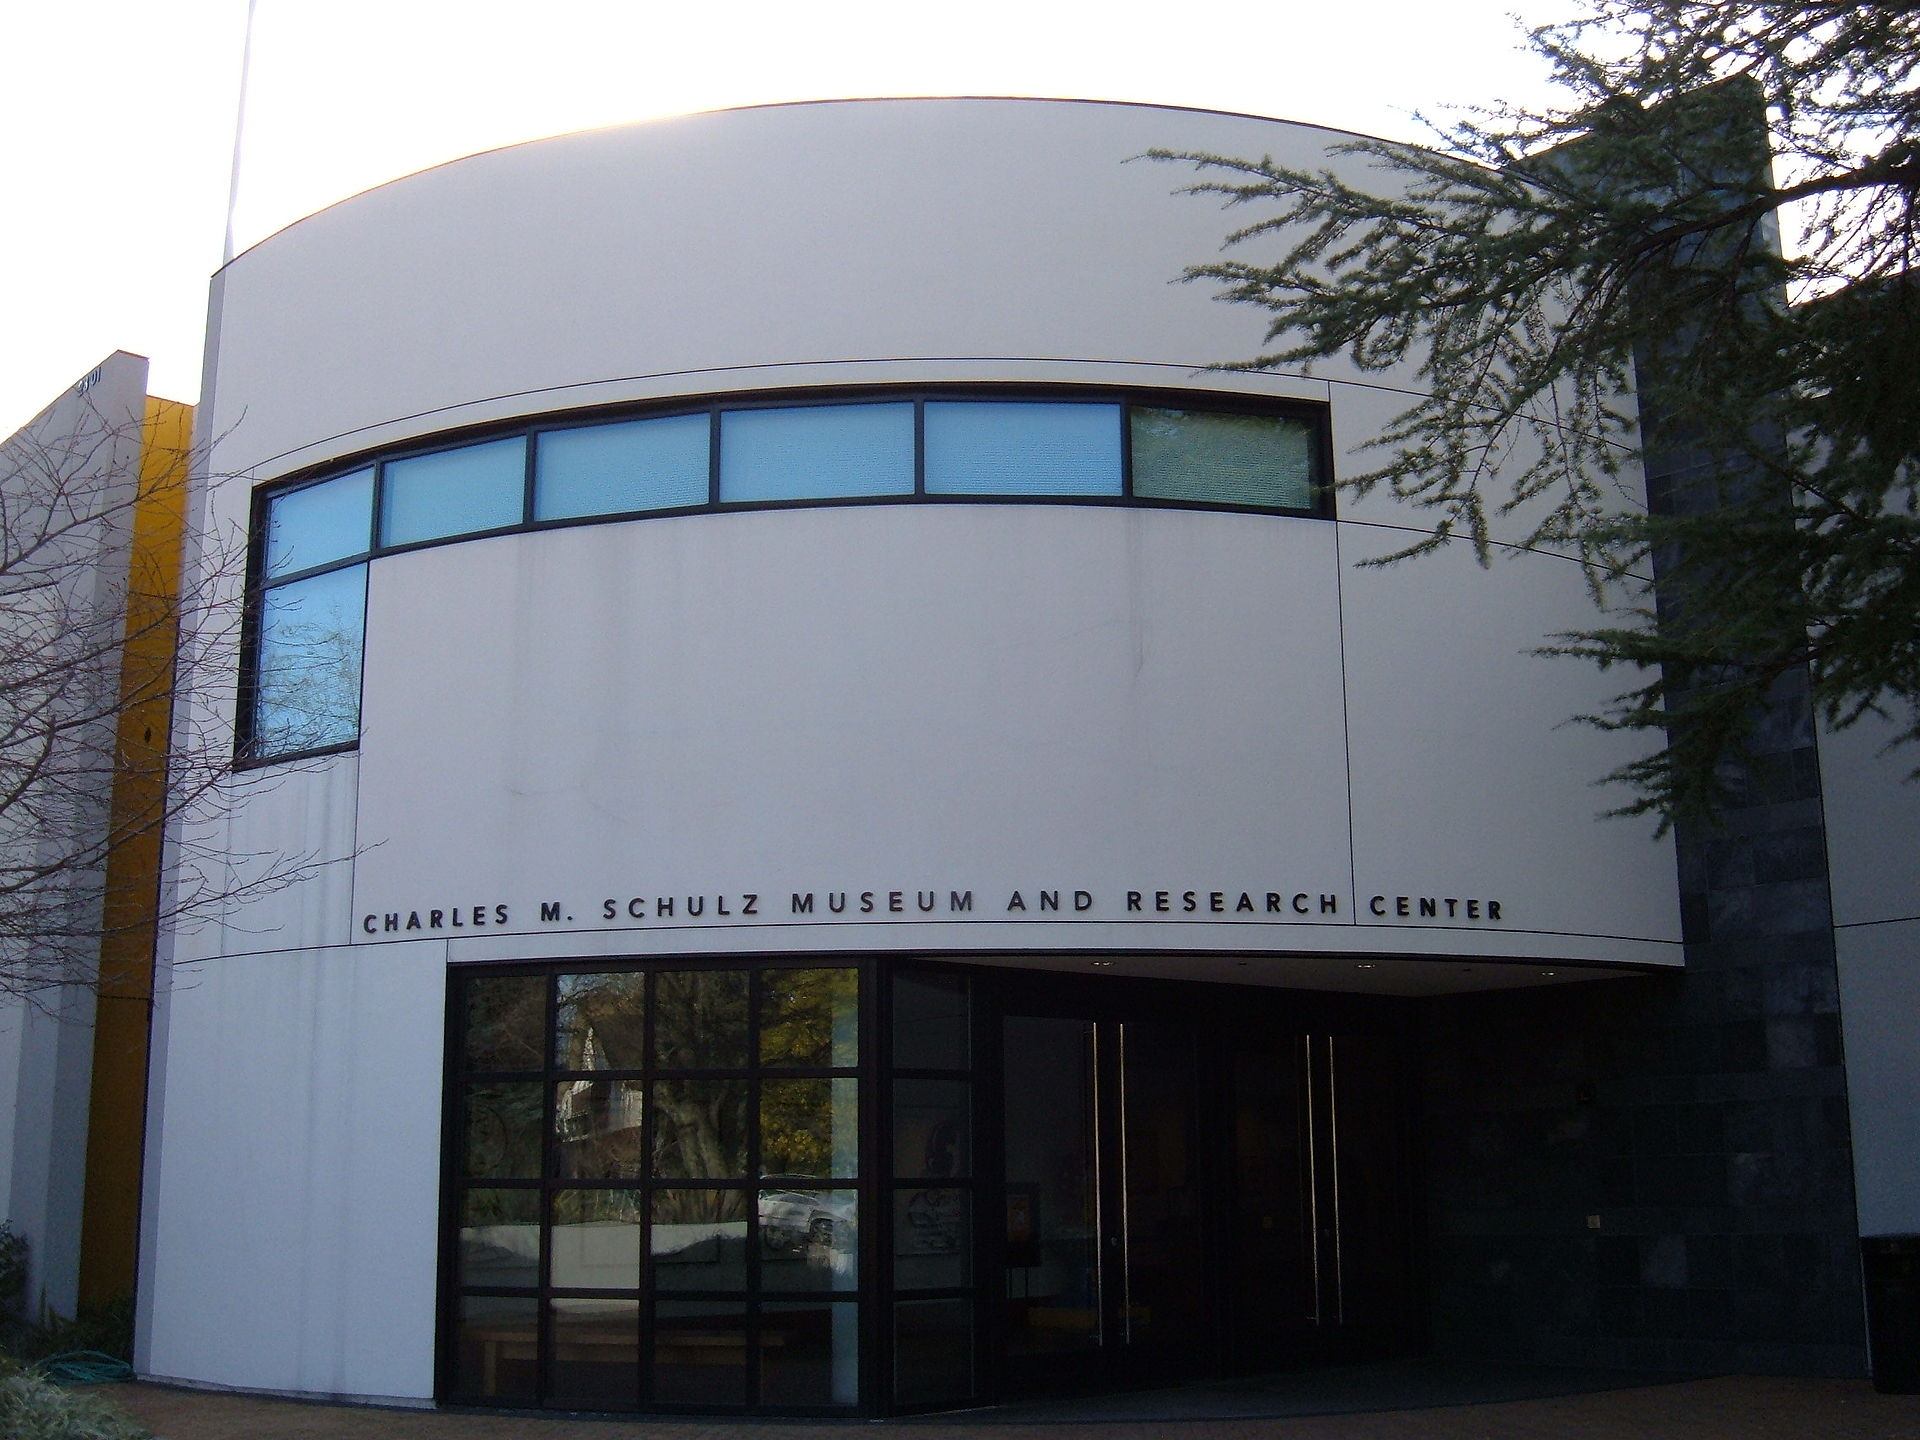 Charles m schulz museum and research center wikipedia for California form 3588